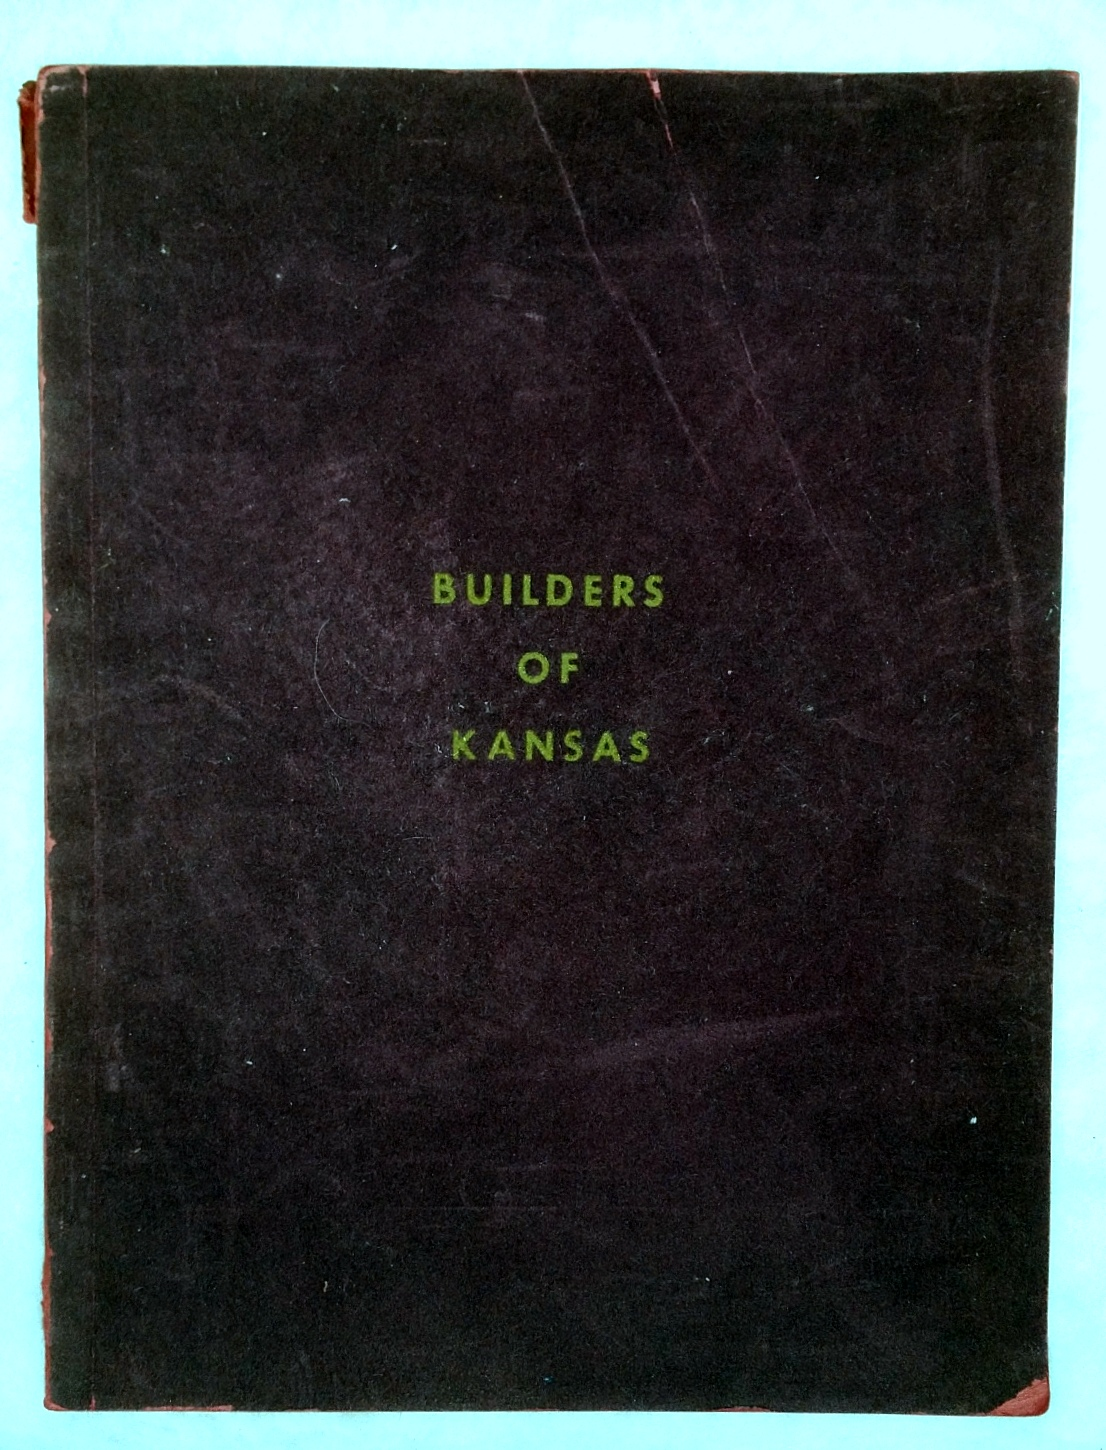 Image for Builders of Kansas:  Busboom & Rauh... Salina, Kansas; J. A. Lundgren & Son... Topeka, Kansas; L. R. Foy Construction Co.... Hutchinson, Kansas; Dondlinger & Sons Construction Co... Wichita, Kansas; Universal Construction Co... Kansas City, Kansas